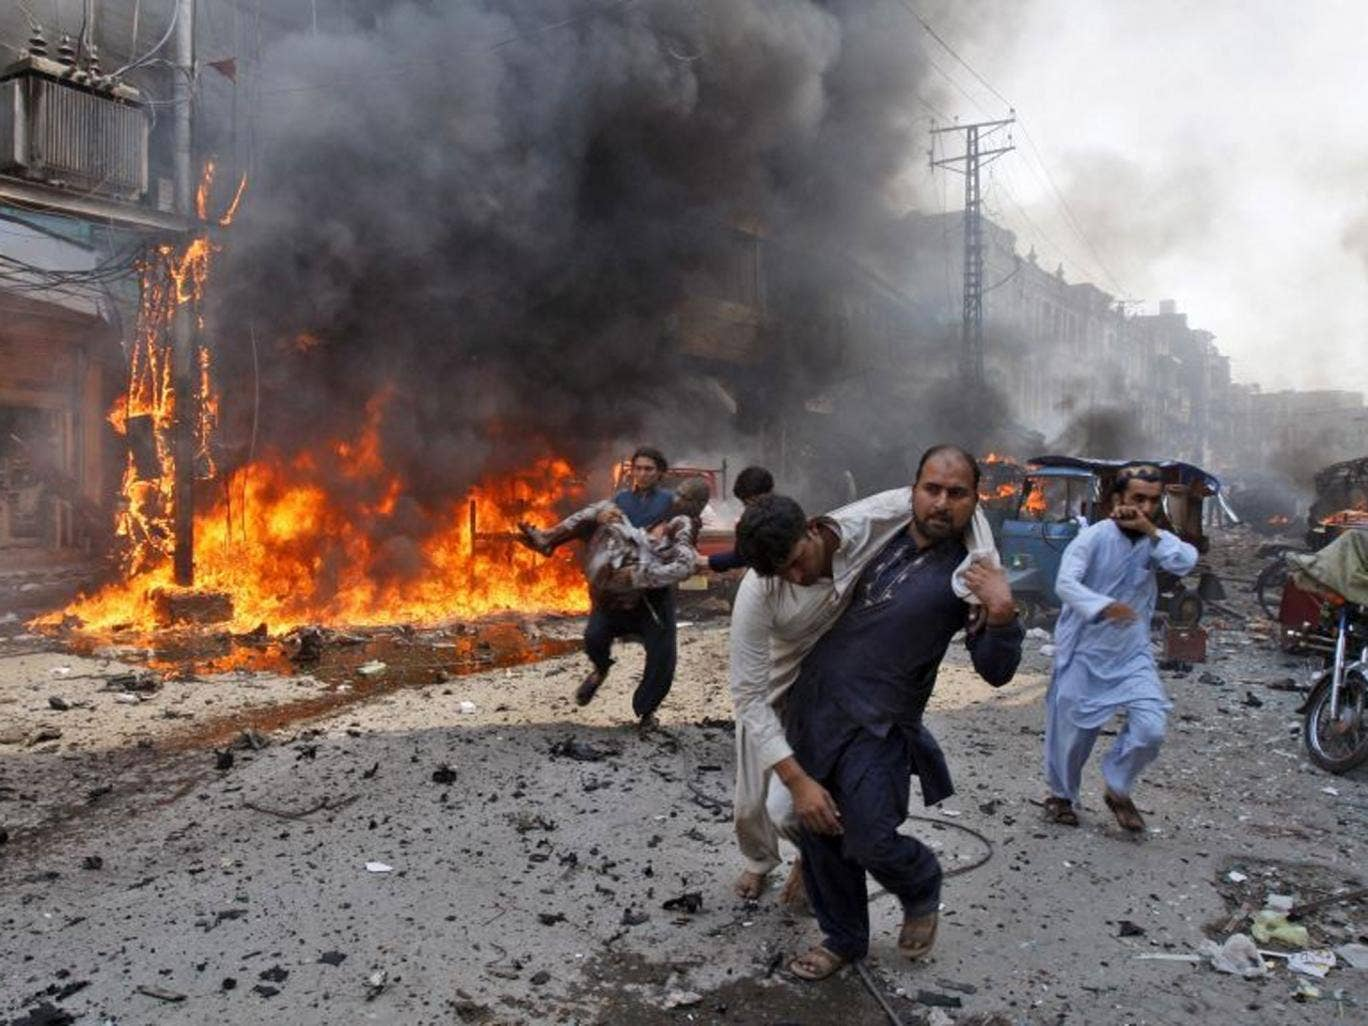 Injured Pakistani men are carried away from the site of a blast shortly after a car explosion in Peshawar, 29 September